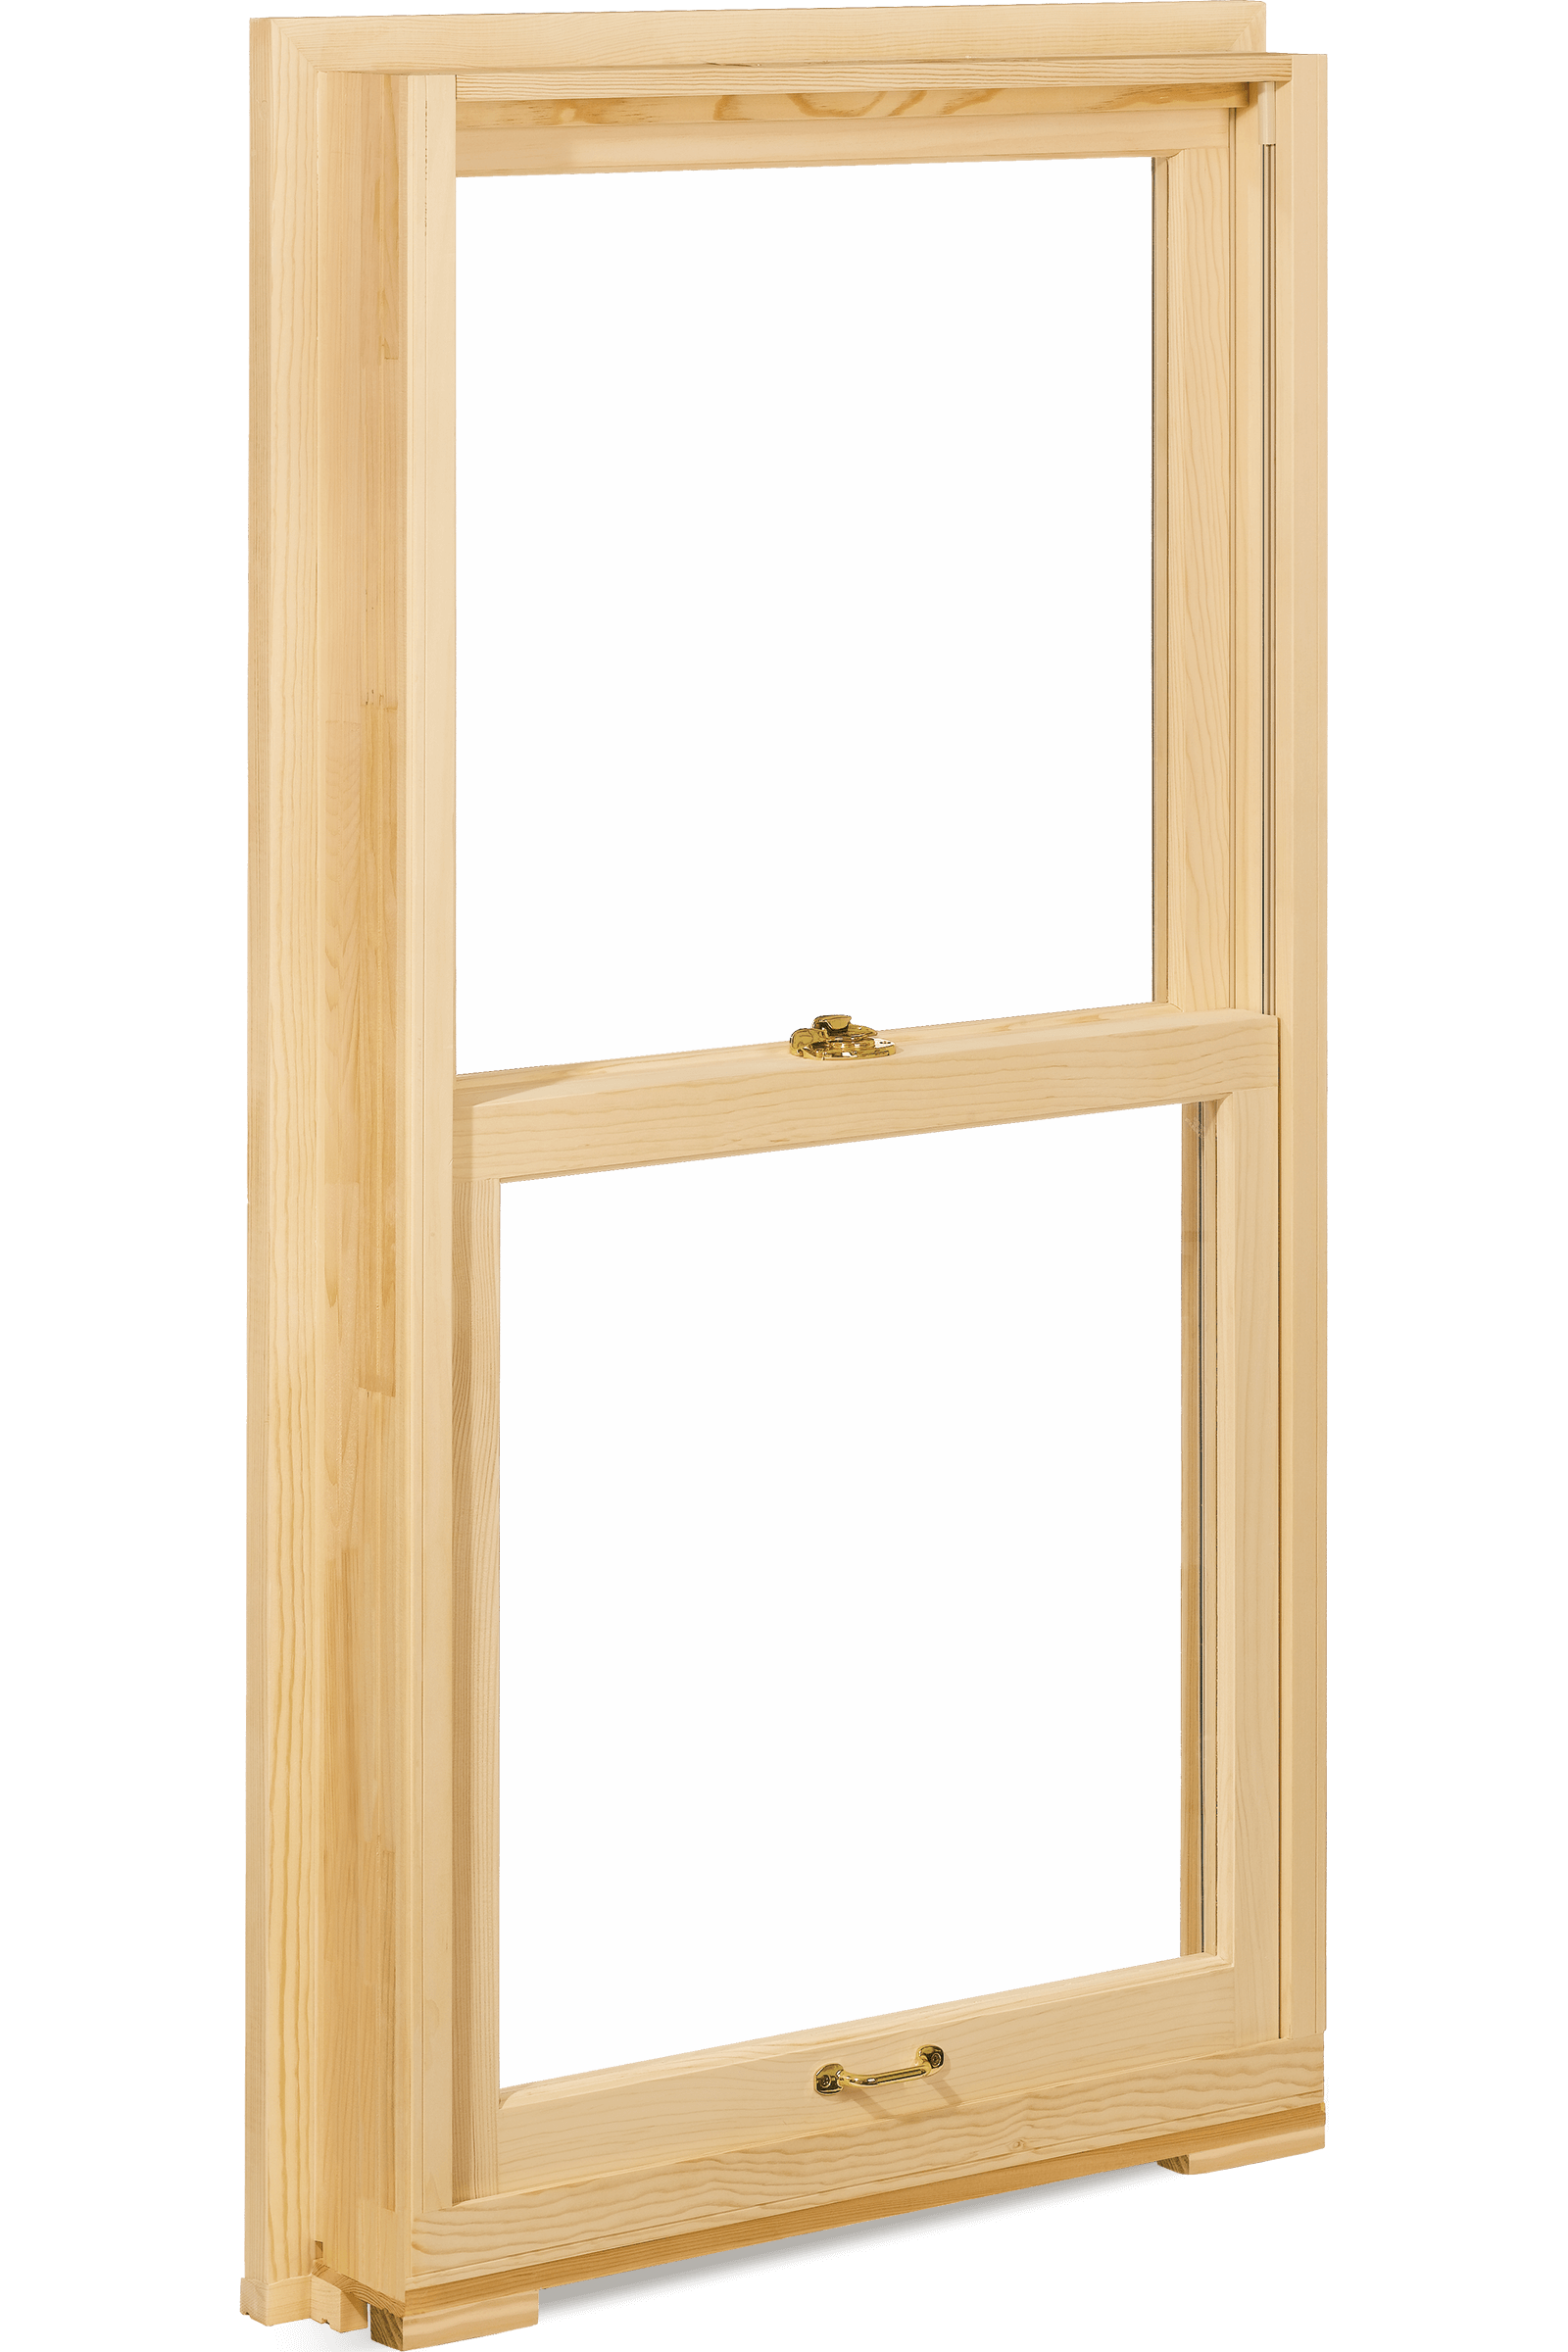 Ultimate Double Hung Wood Windows Marvin